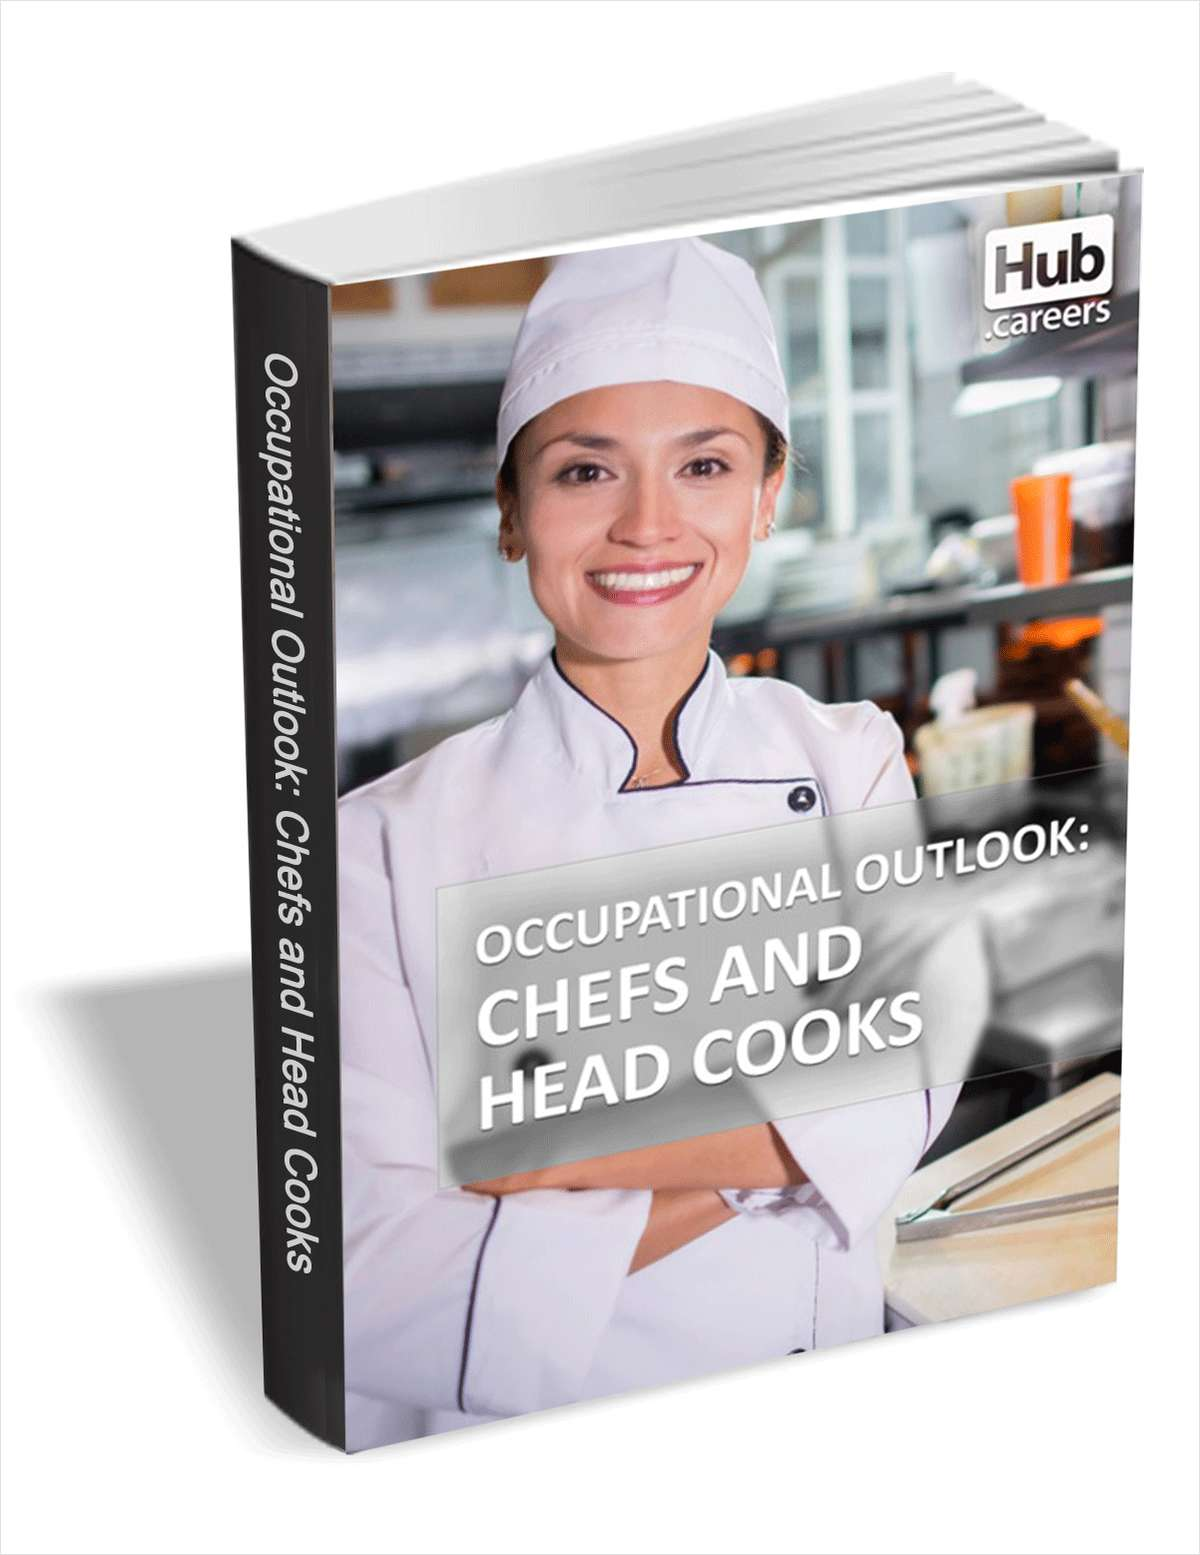 Chefs and Head Cooks - Occupational Outlook